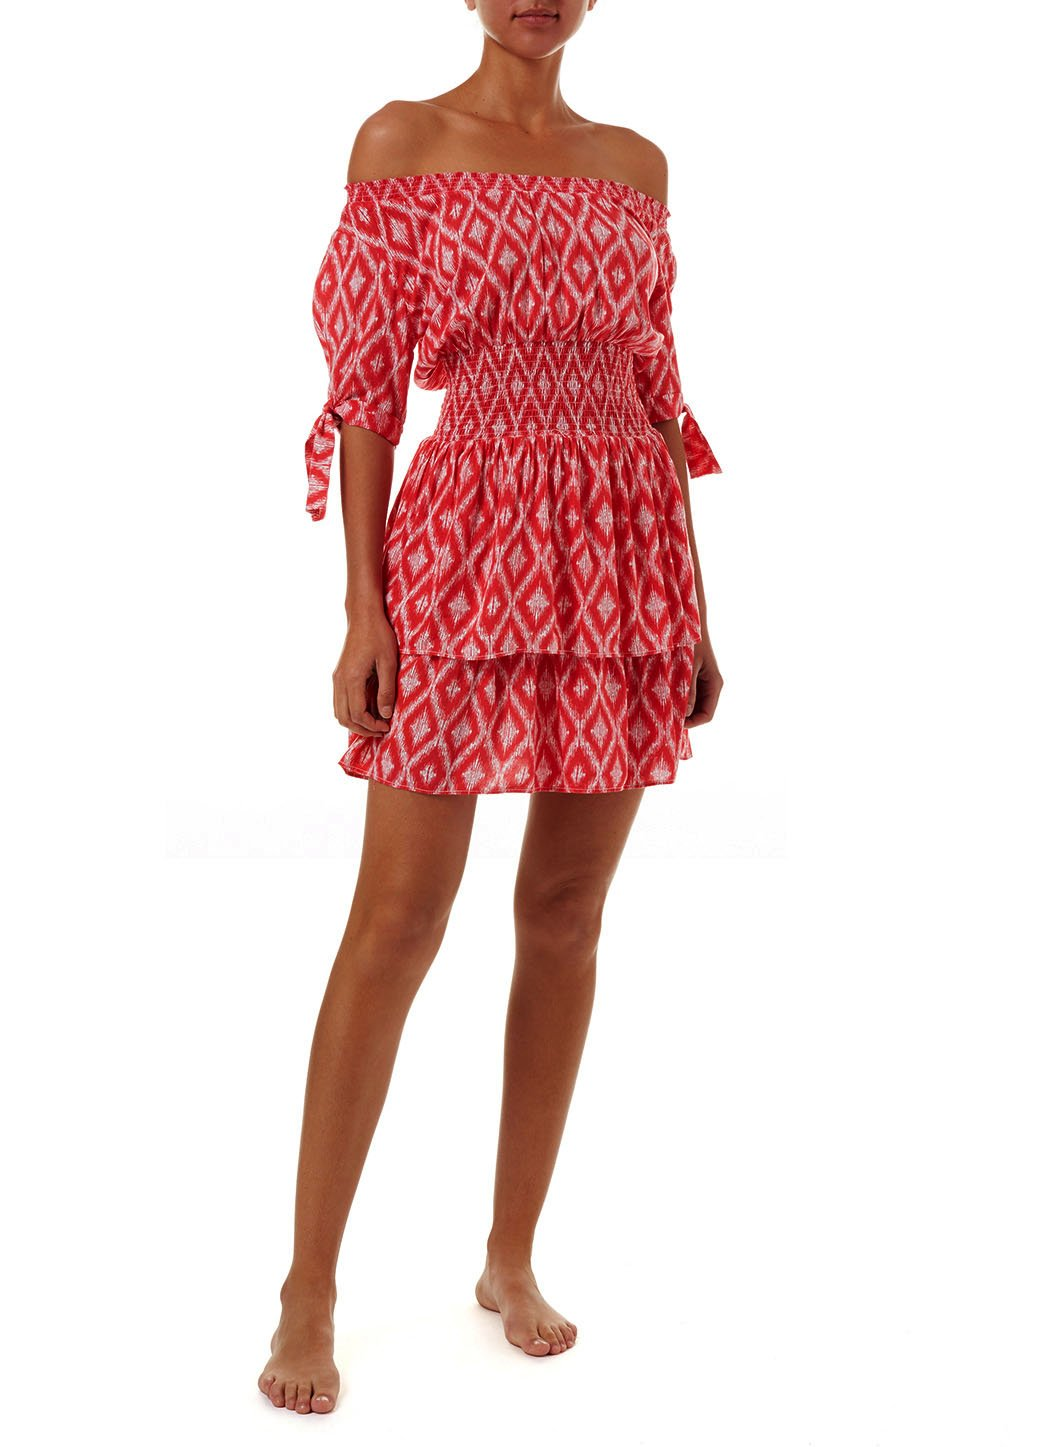 camilla red ikat offtheshoulder short dress 2019 F